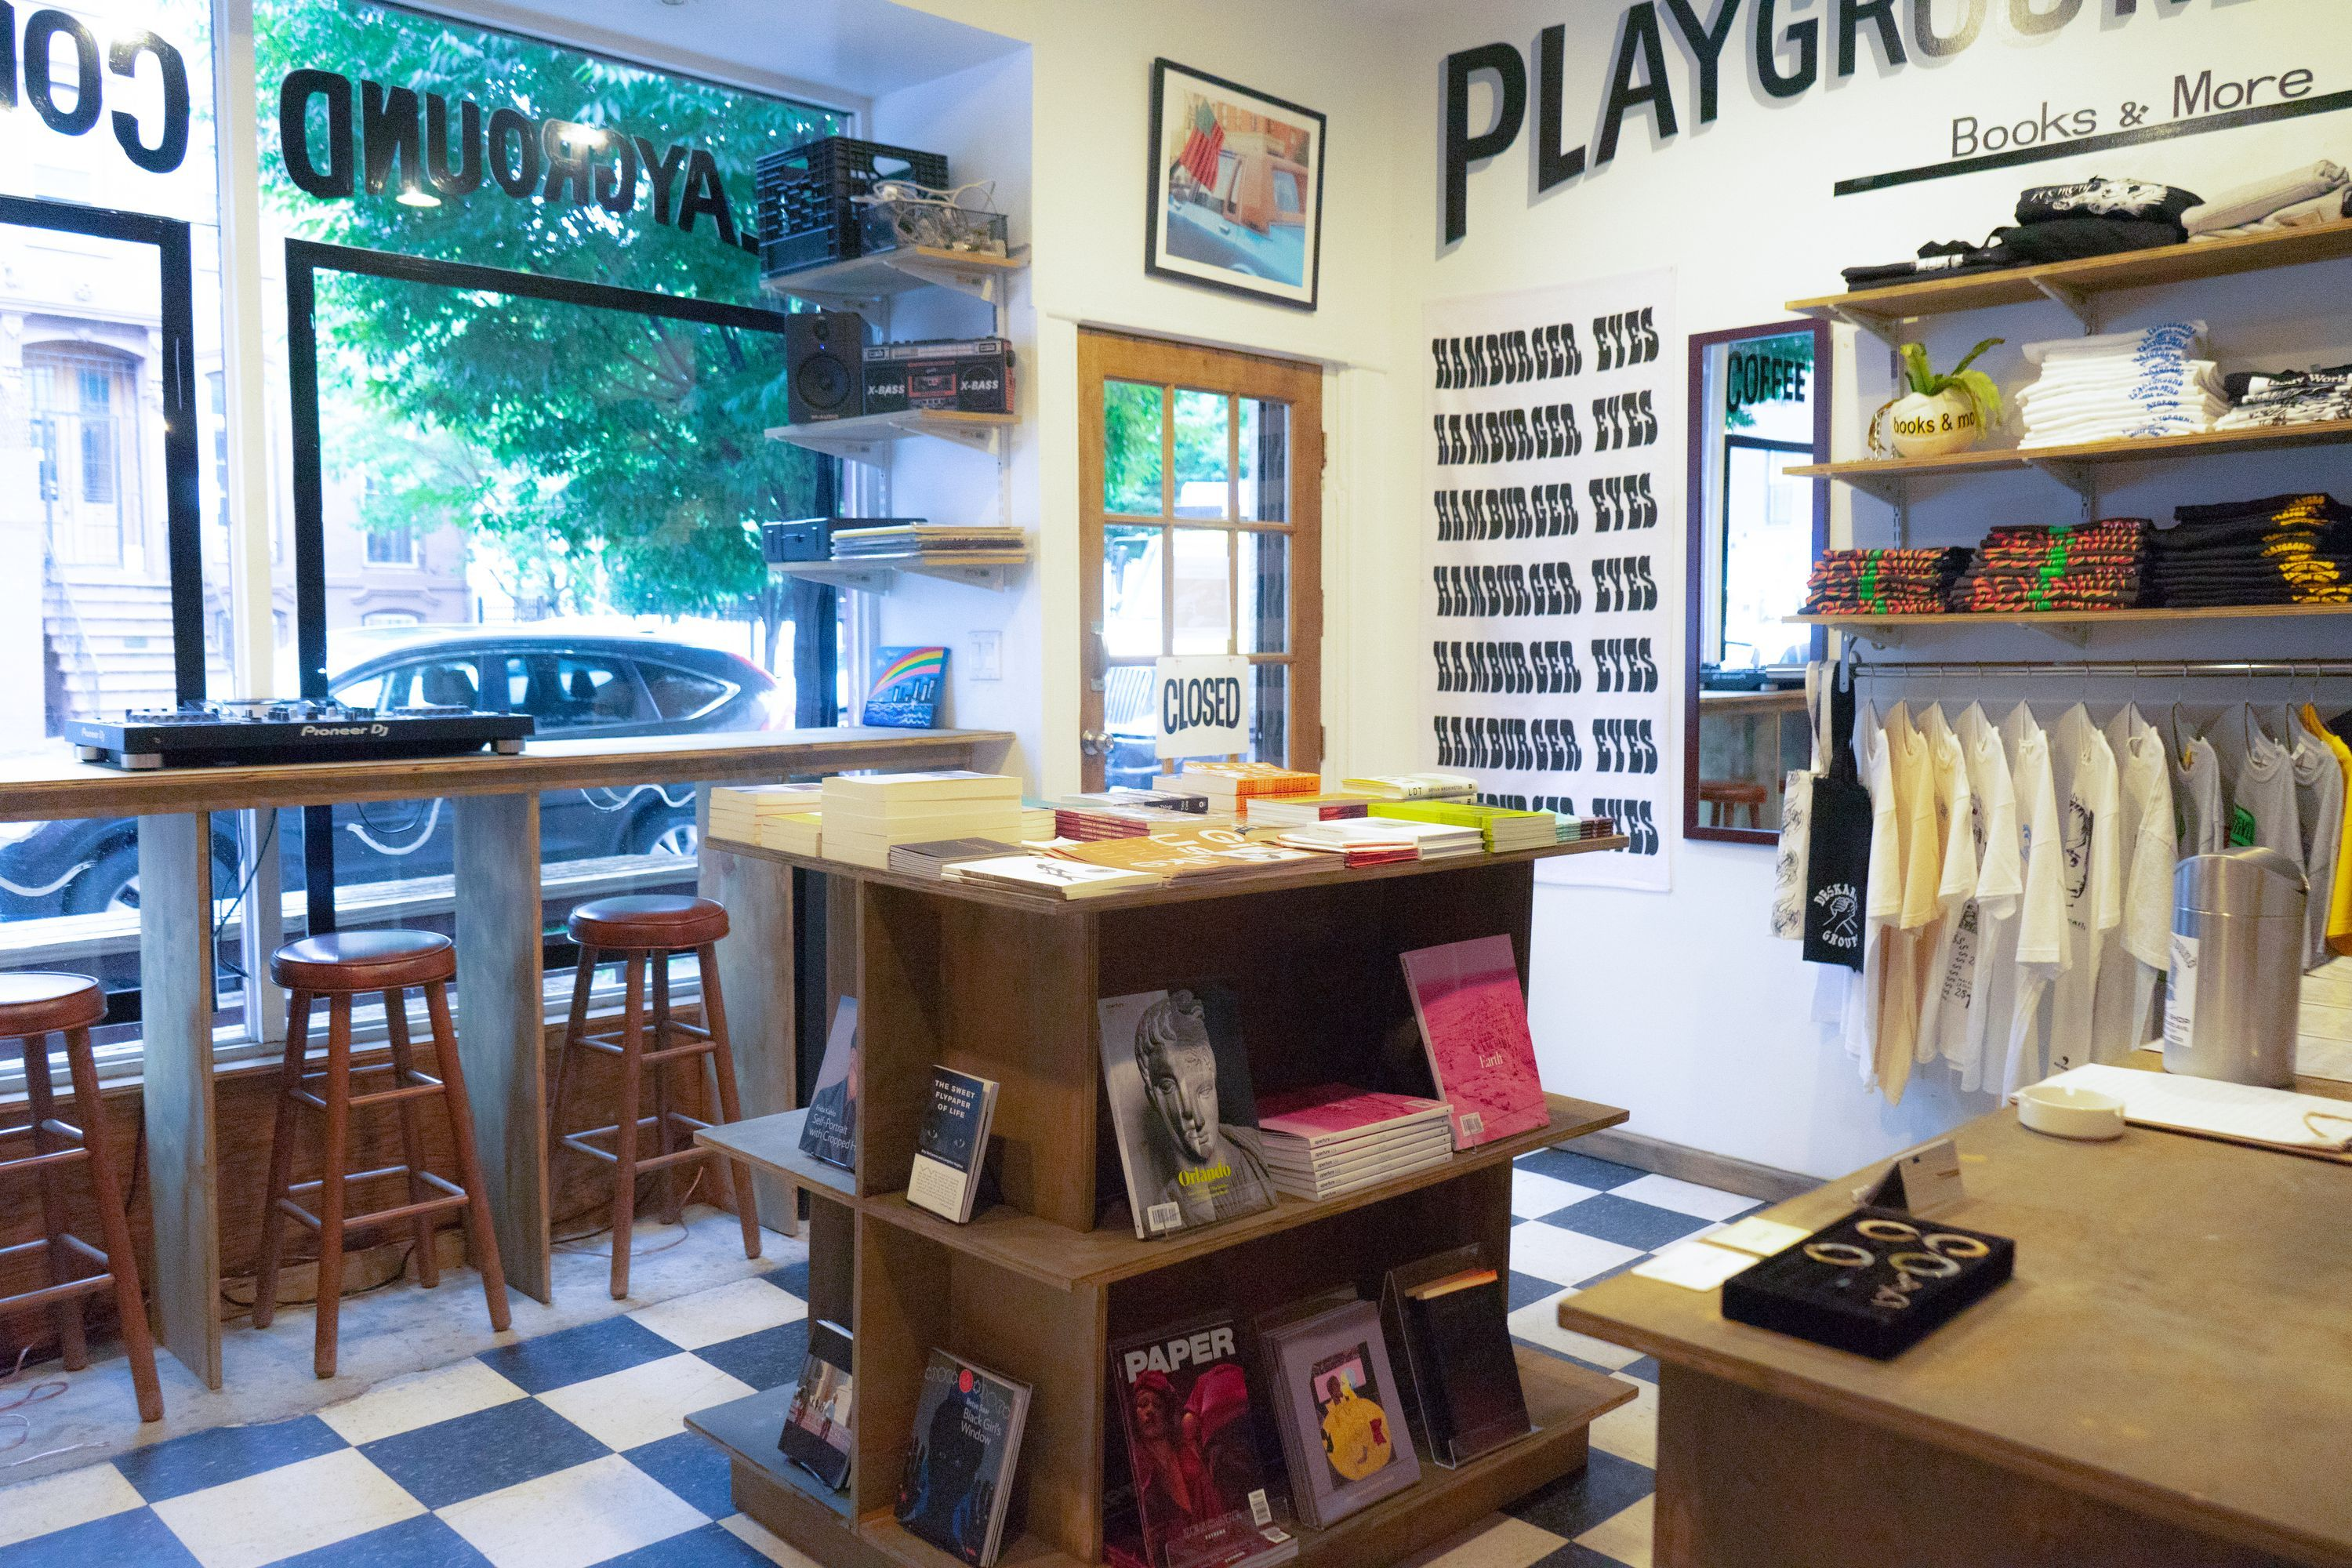 Interior of Playground annex with books and T-shirt displays.